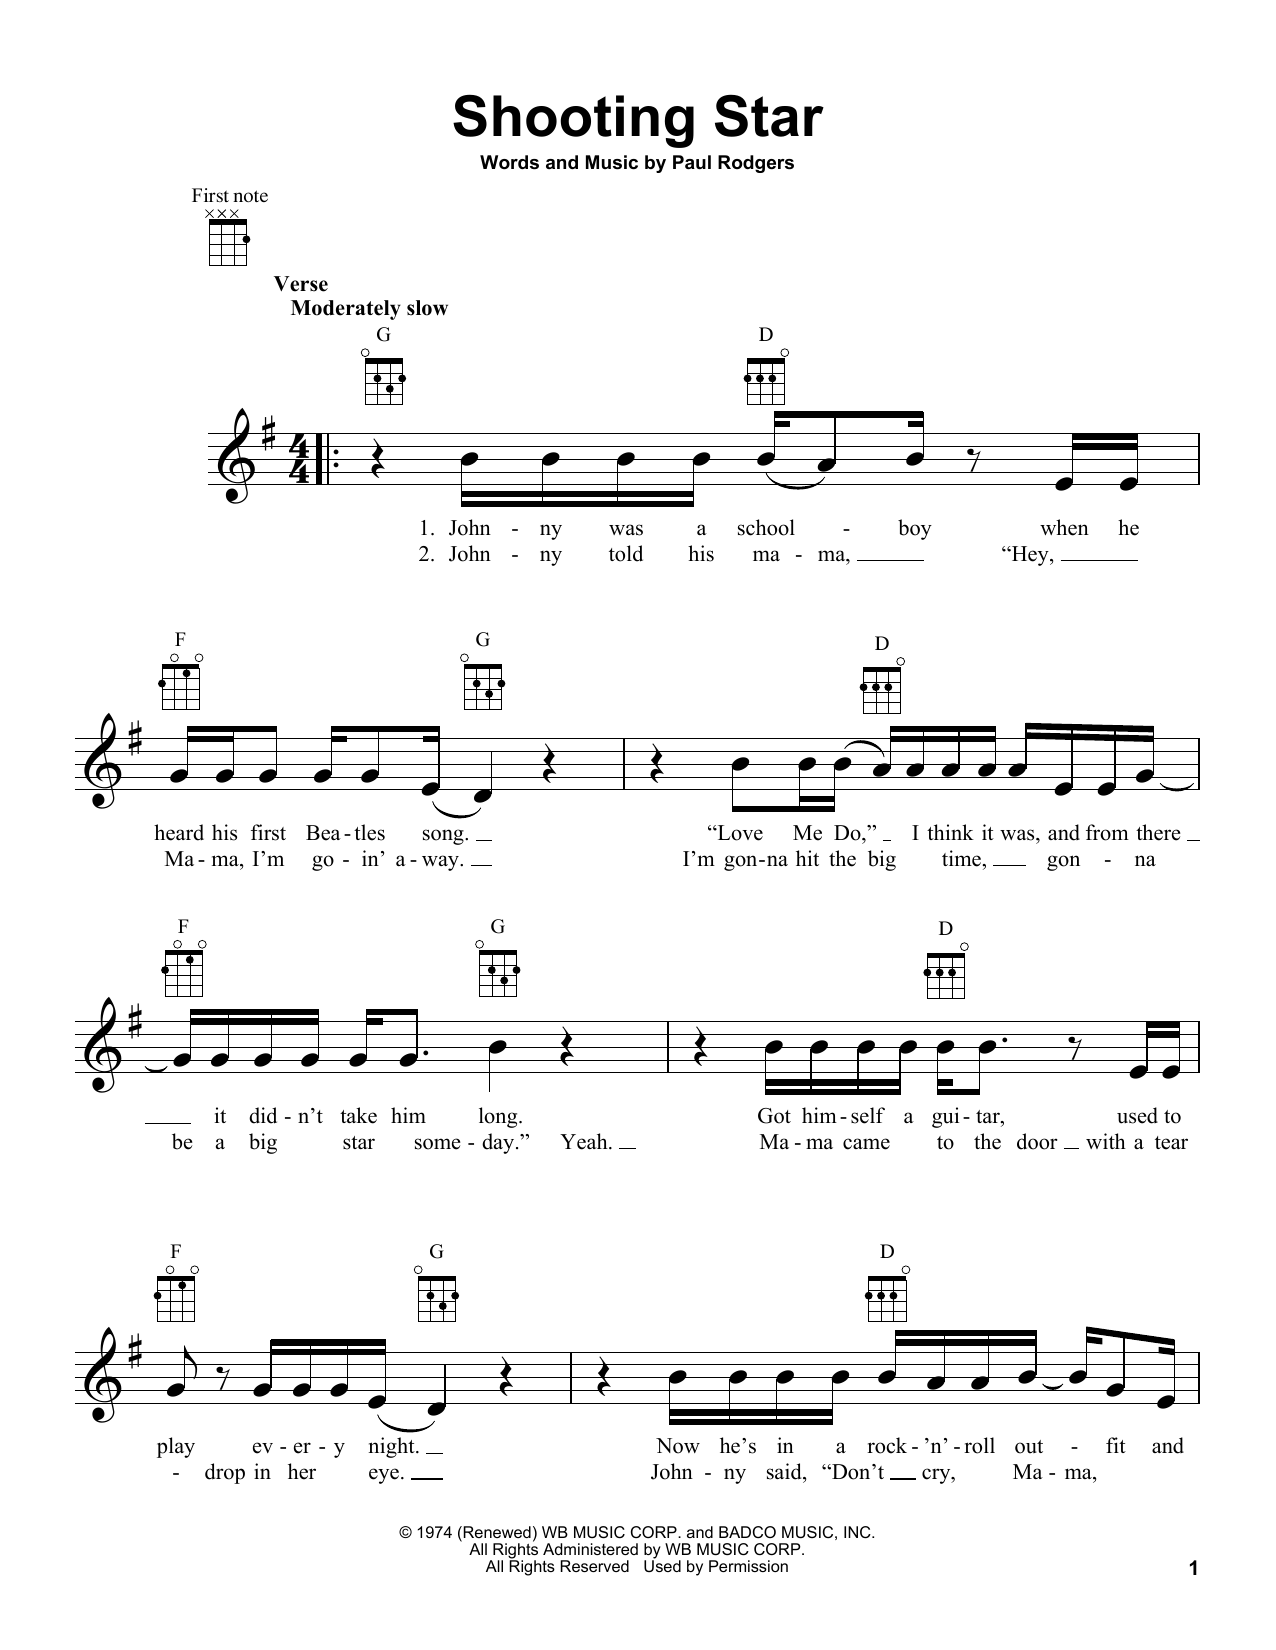 Sheet notation for twinkle twinkle little star with swing chords